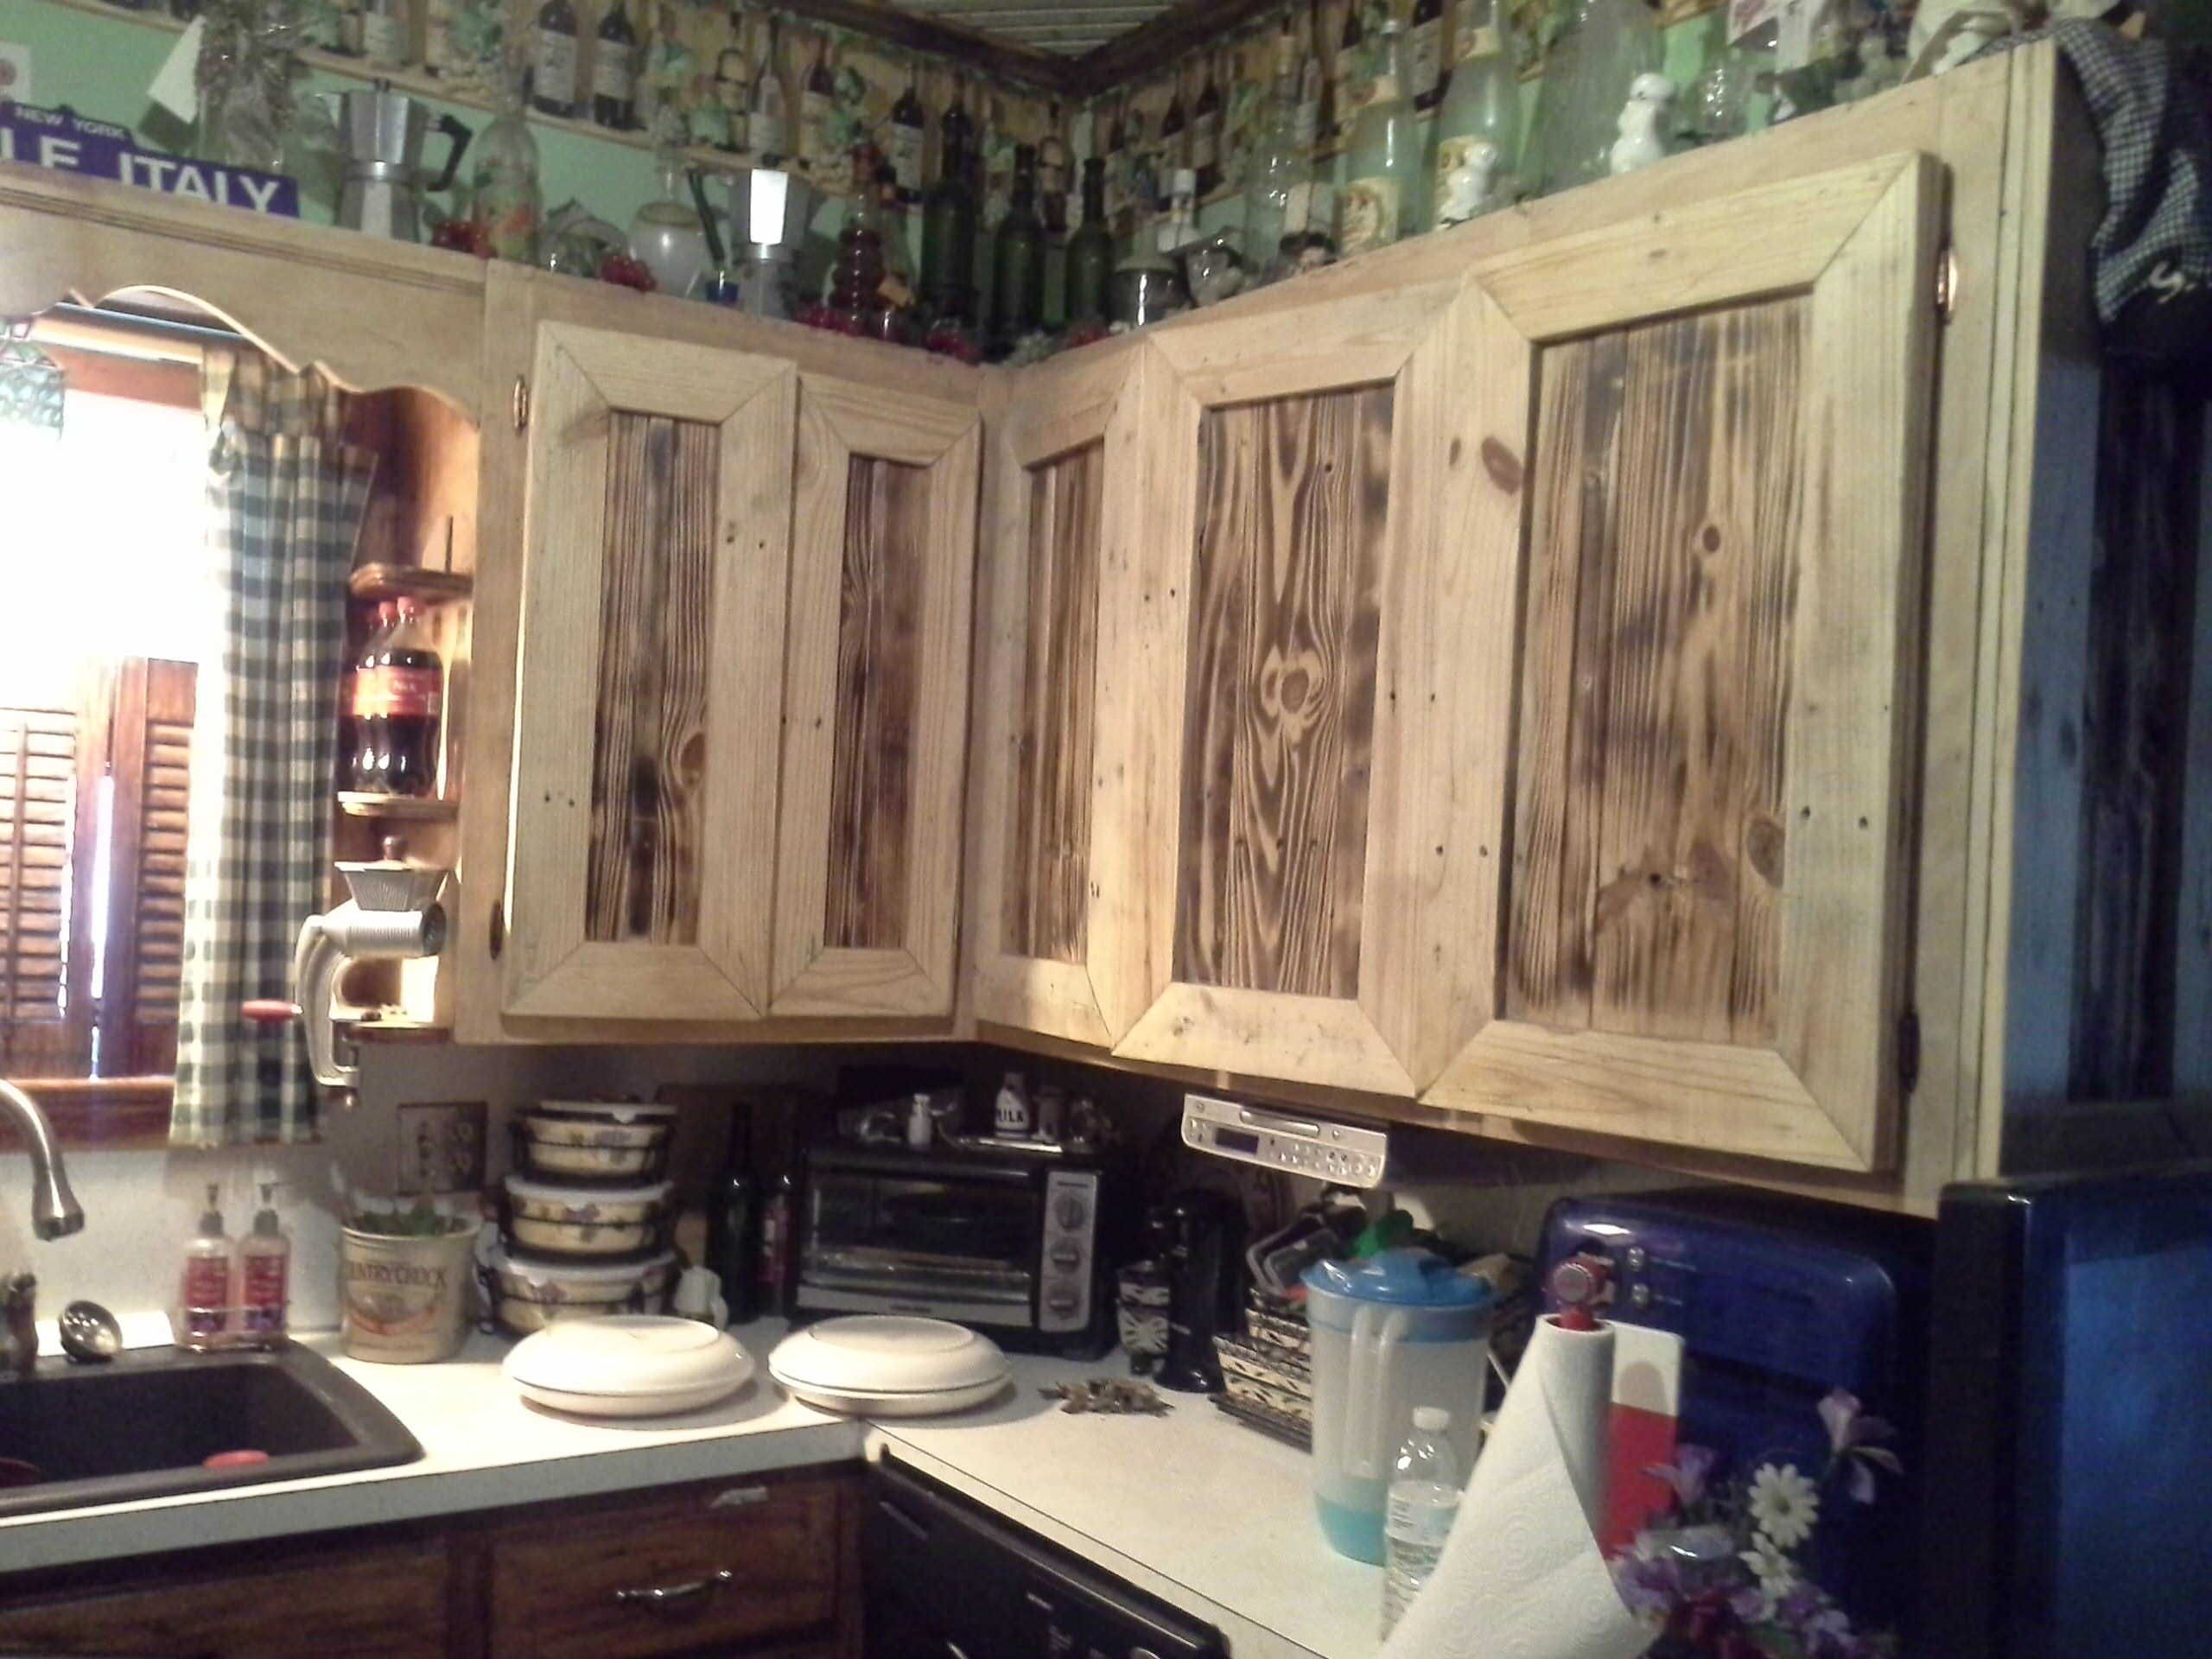 These Kitchen Items Were Made From Recycled Wooden Pallets The Lights Were Made Kitchen Cabinets Made From Pallets Pallet Kitchen Kitchen Cabinet Door Styles